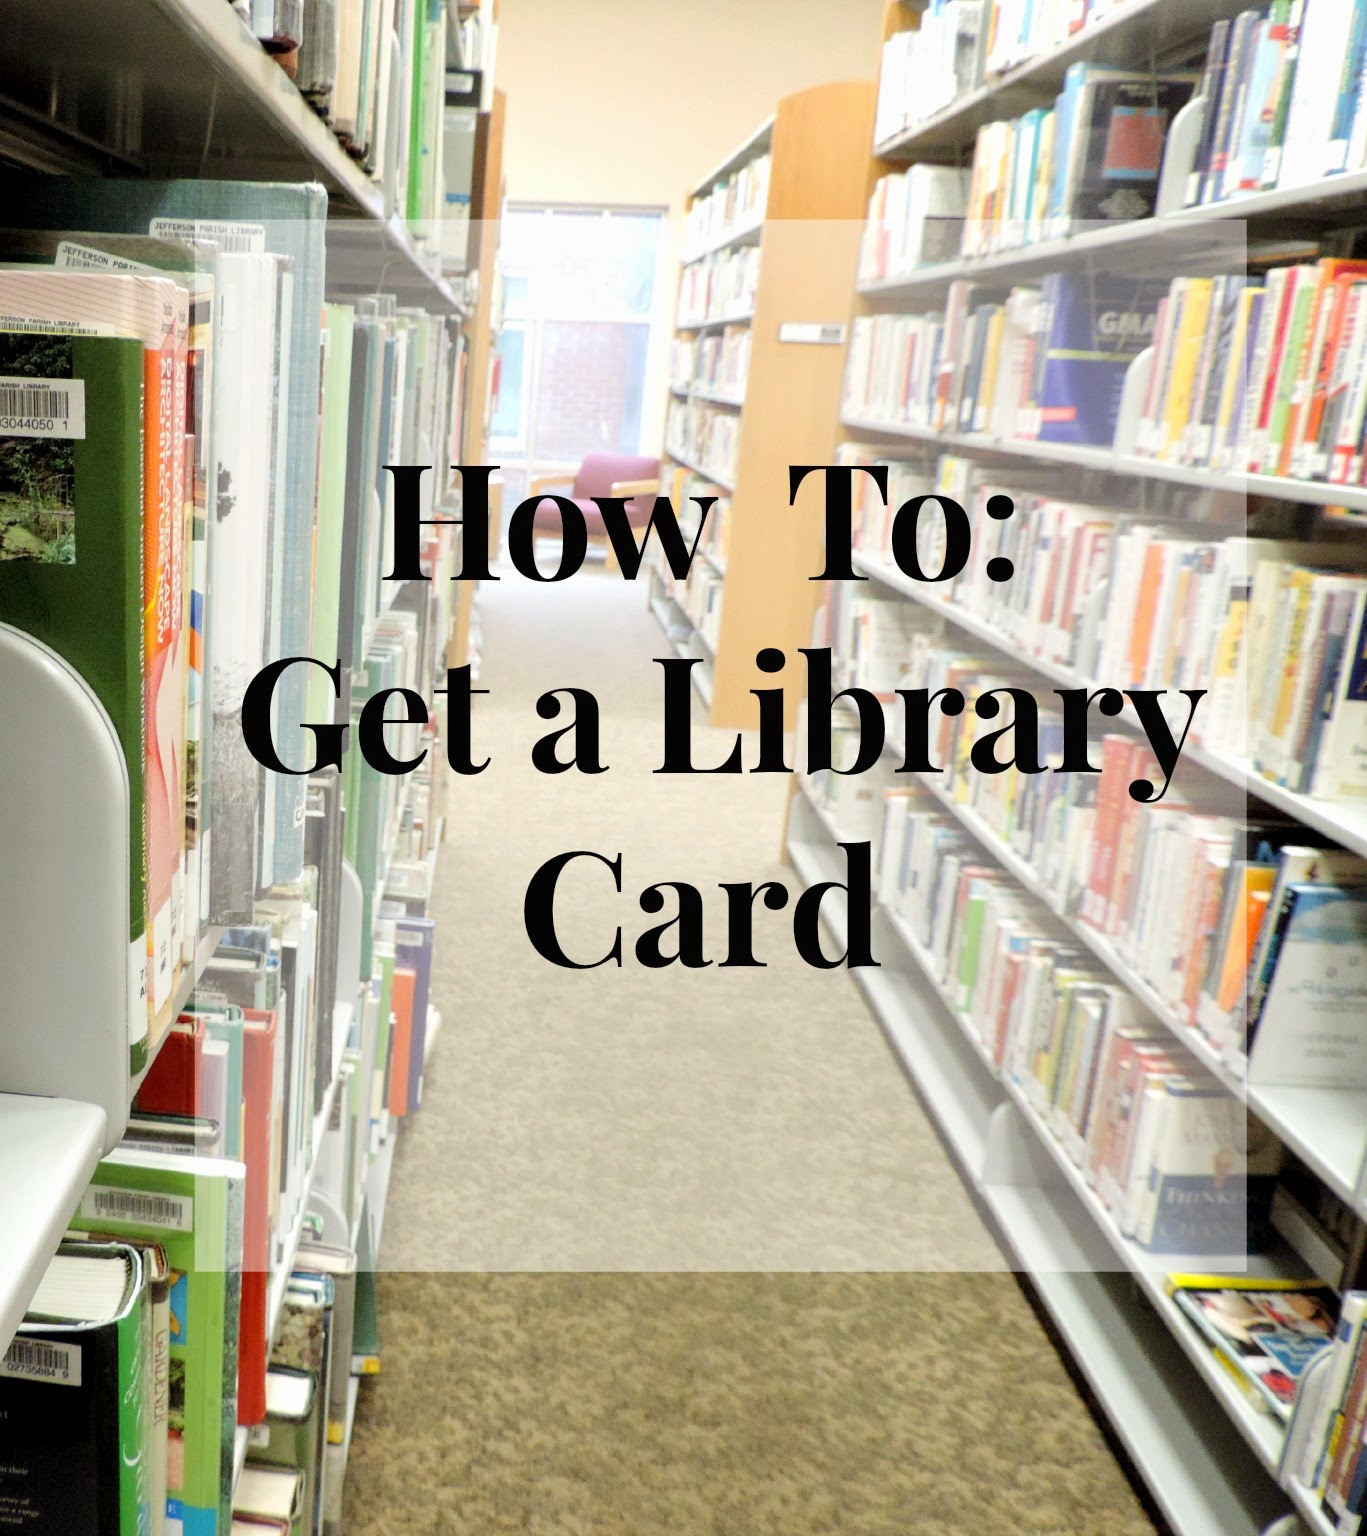 Library Cards, Books, Reading, Library